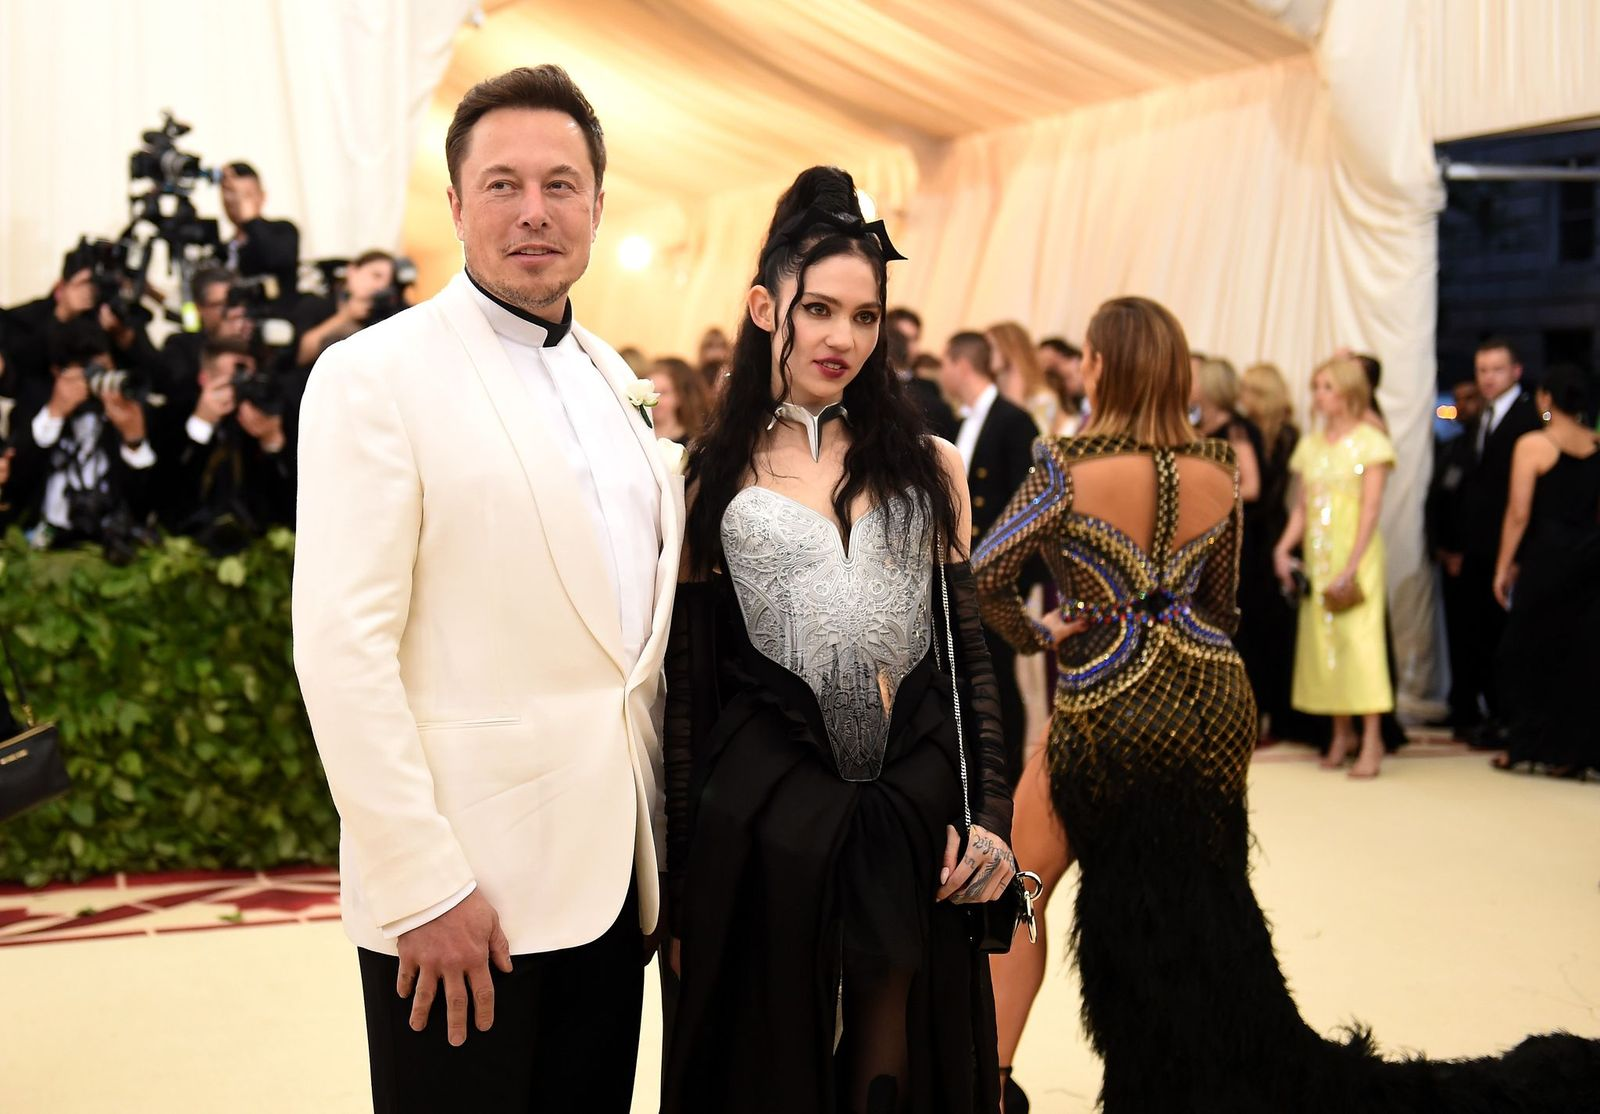 Elon Musk and Claire Boucher aka Grimes attending the Met Gala in 2018 Source | Photo: Getty Images